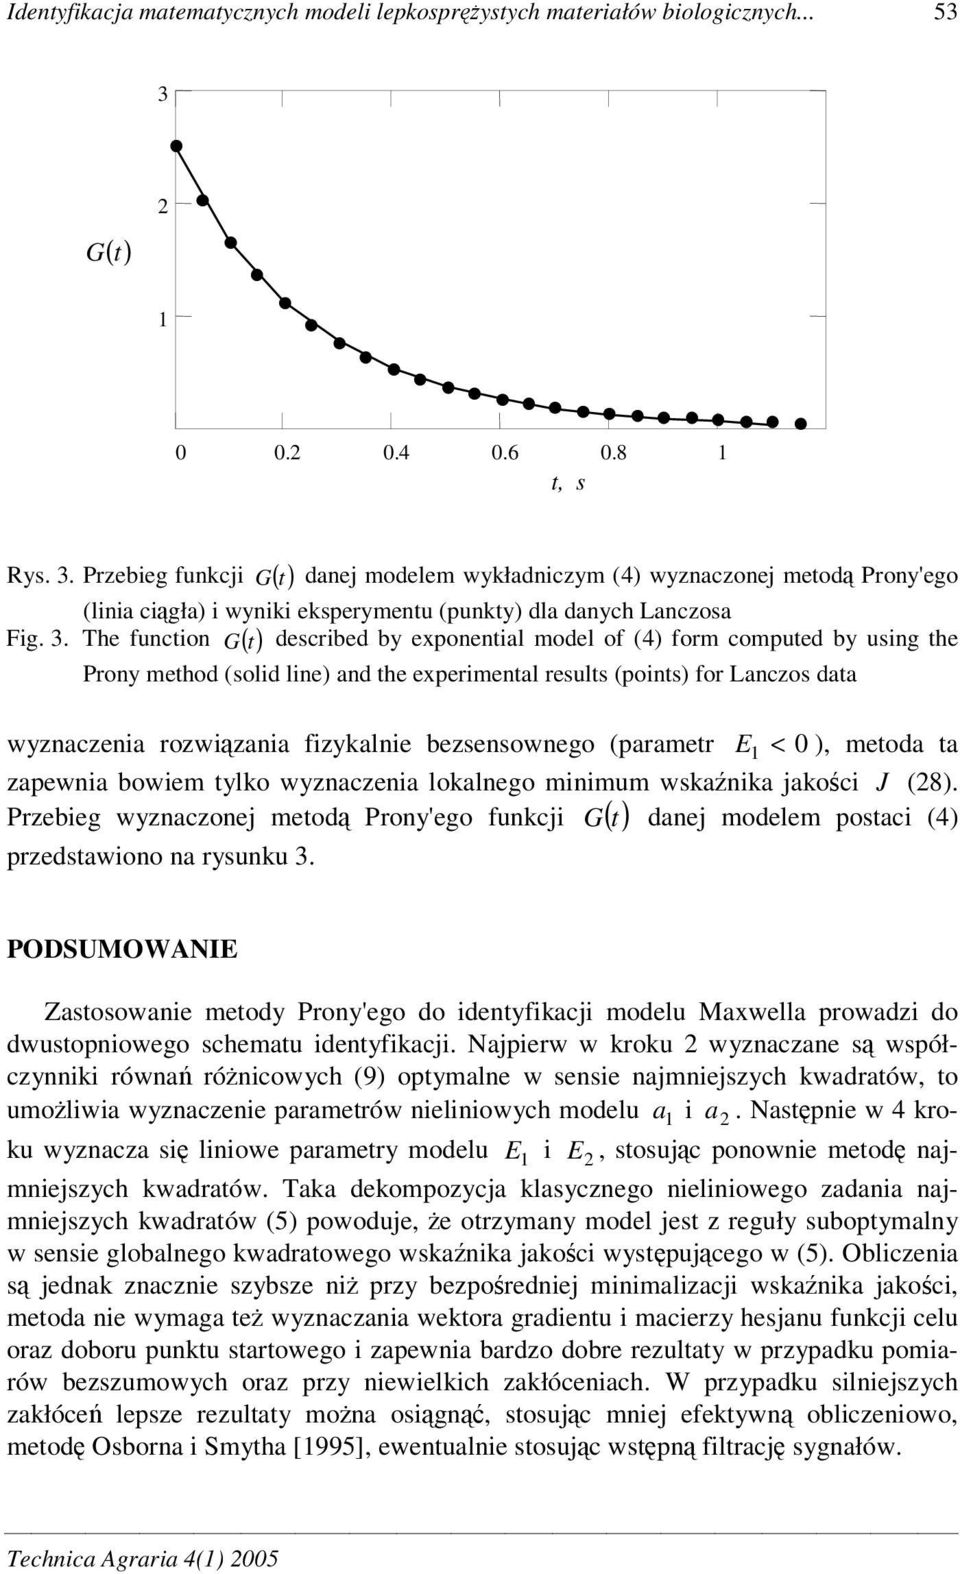 Przebeg funkcj G ( t) danej modelem wykładnczym (4) wyznaczonej metod Prony'ego (lna cgła) wynk eksperymentu (punkty) dla danych Lanczosa descrbed by exponental model of (4) form computed by usng the